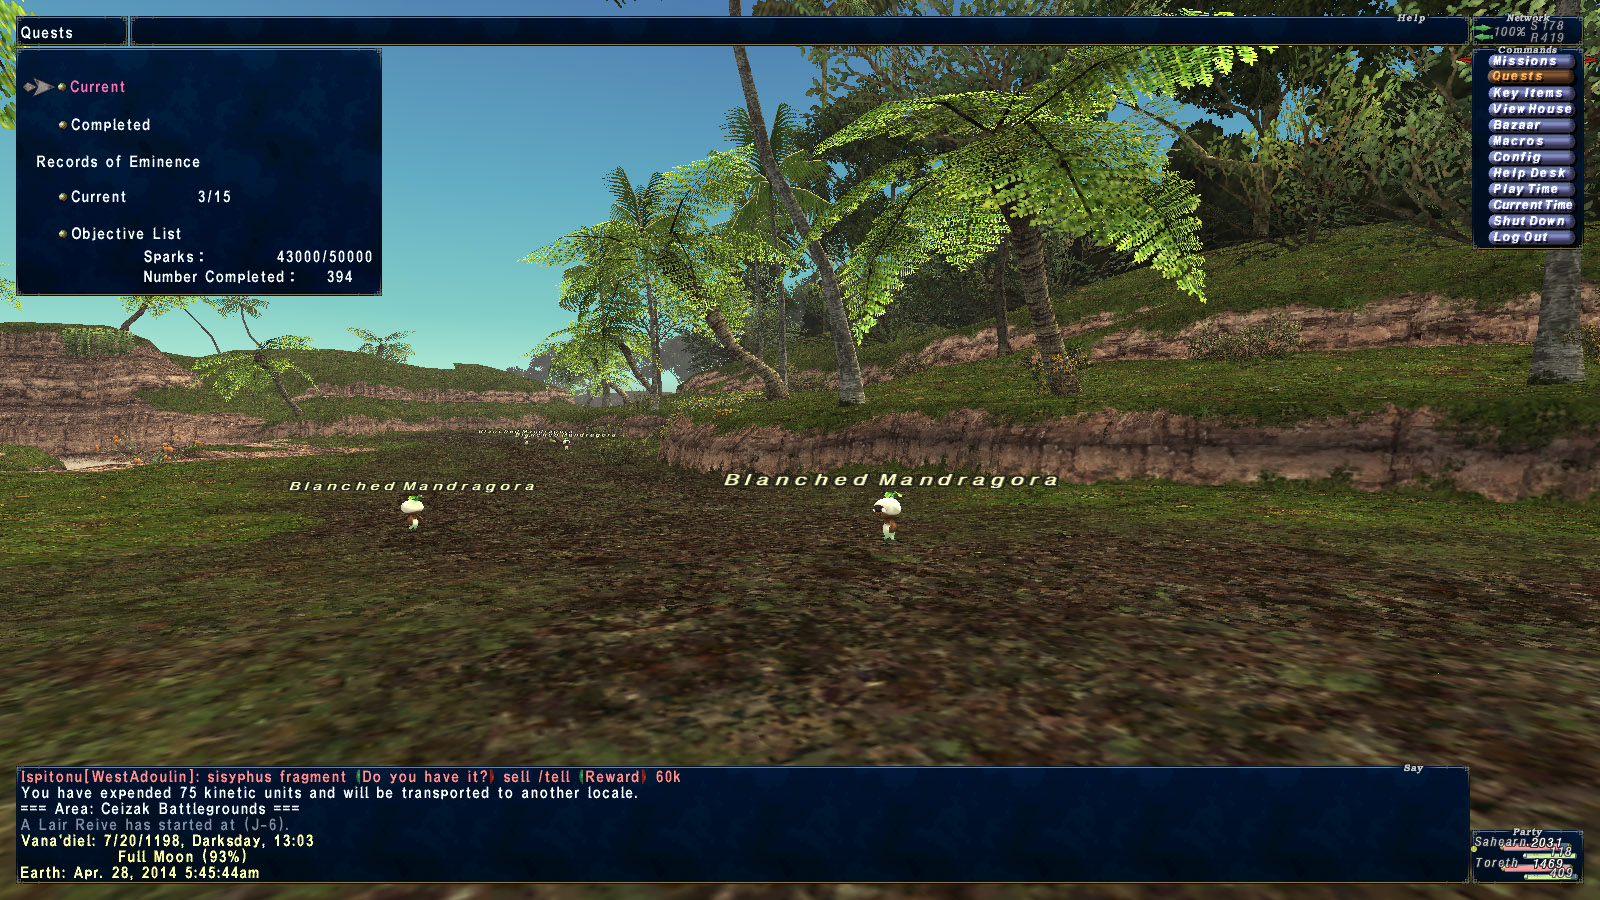 sahearniitth ffxi 300000 10141021 thought that completion says unity with clears bismarck help only could people done optistery ffxiah said idea about person thanks eminence completed disappointment valley windurst waters peek chose option records naked book touched north most library